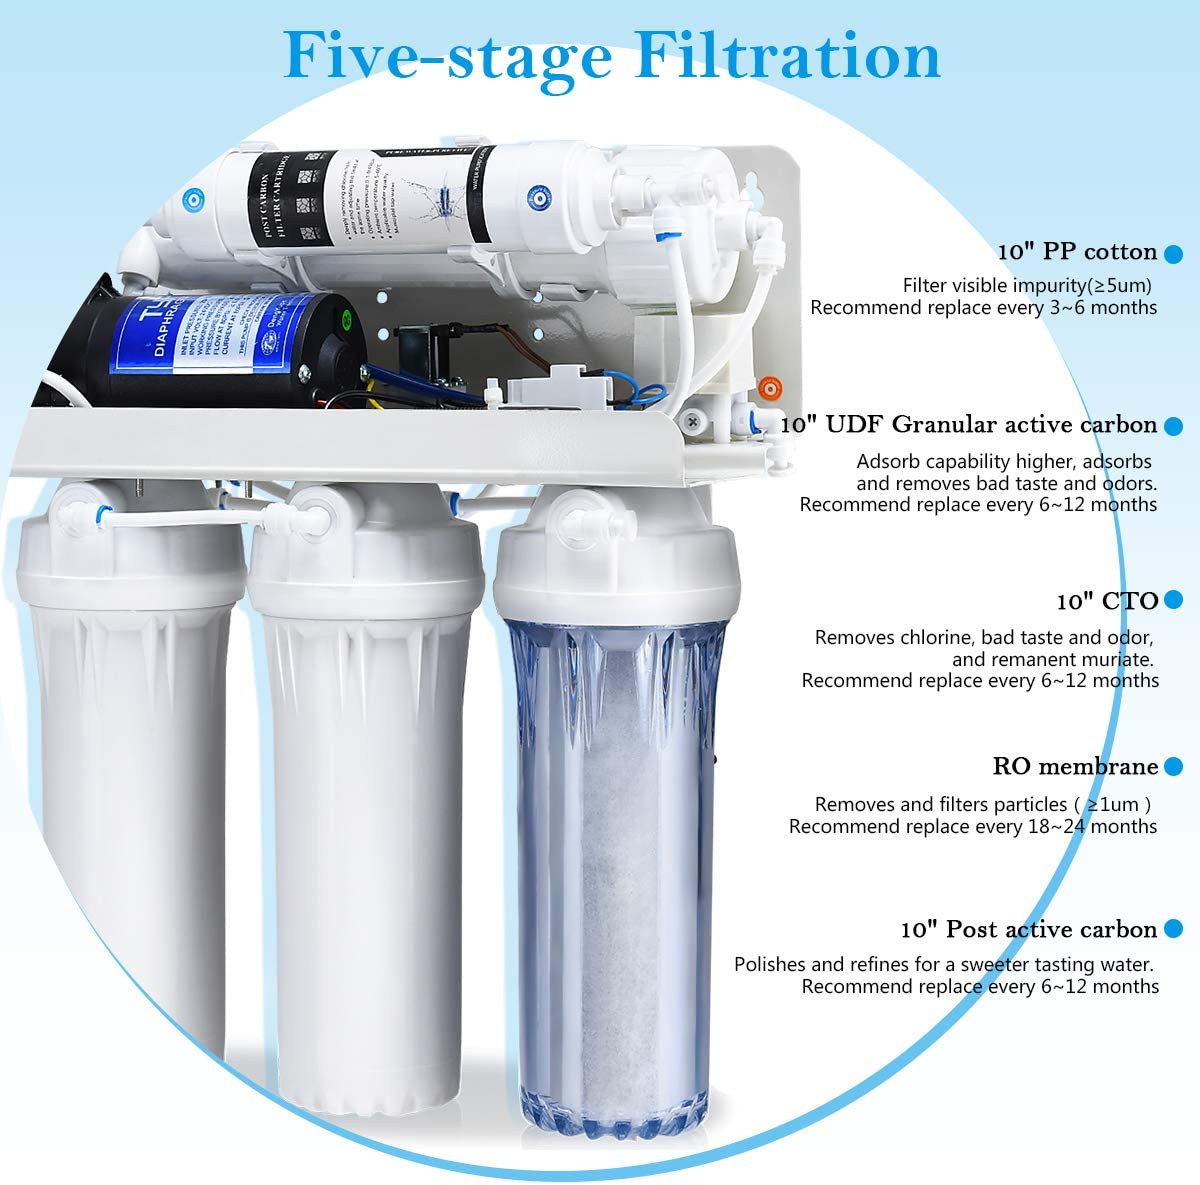 COSTWAY Reverse Osmosis Water Filtration System NSF certified 5 Stage RO Water Purifier with Faucet and Tank High Capacity Under Sink Drinking Water Filter System for Whole House